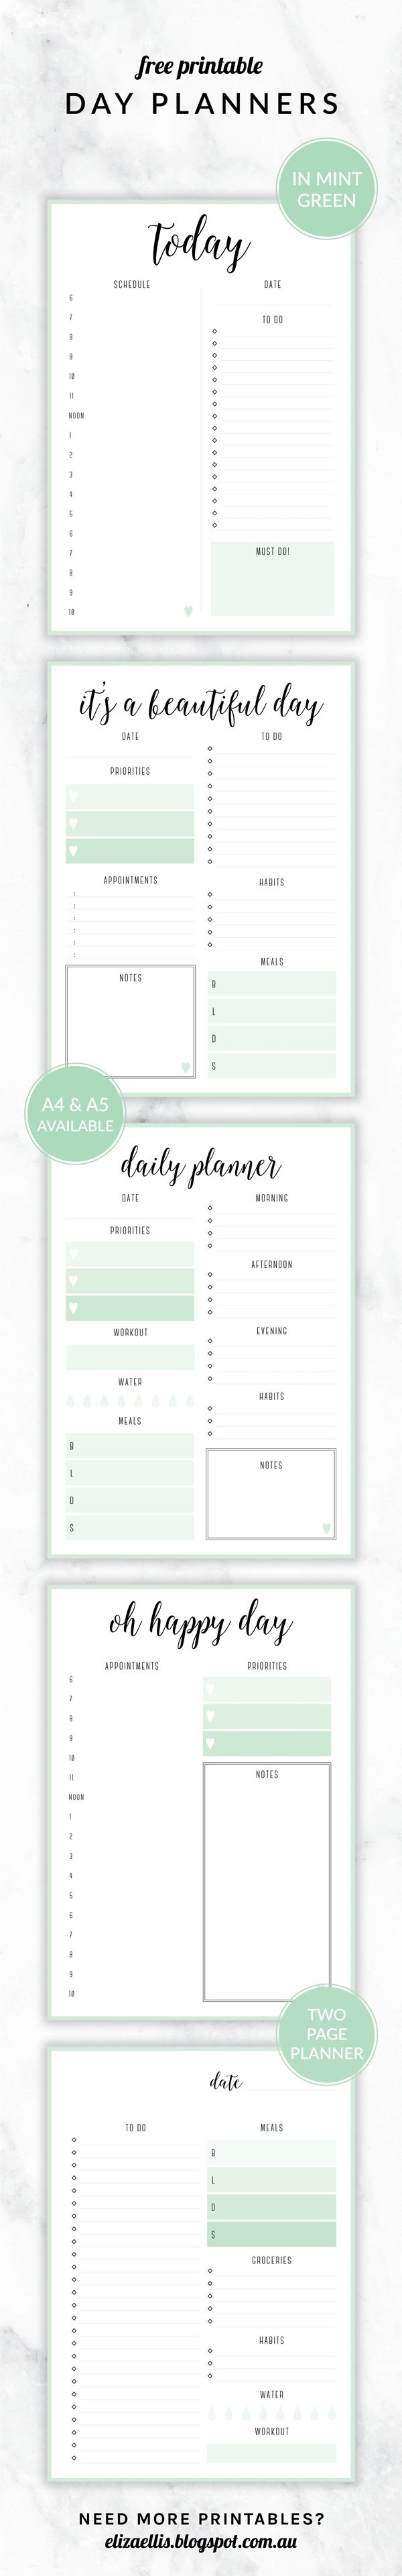 788 best PRINTABLES images on Pinterest | Free printables, Planner ...